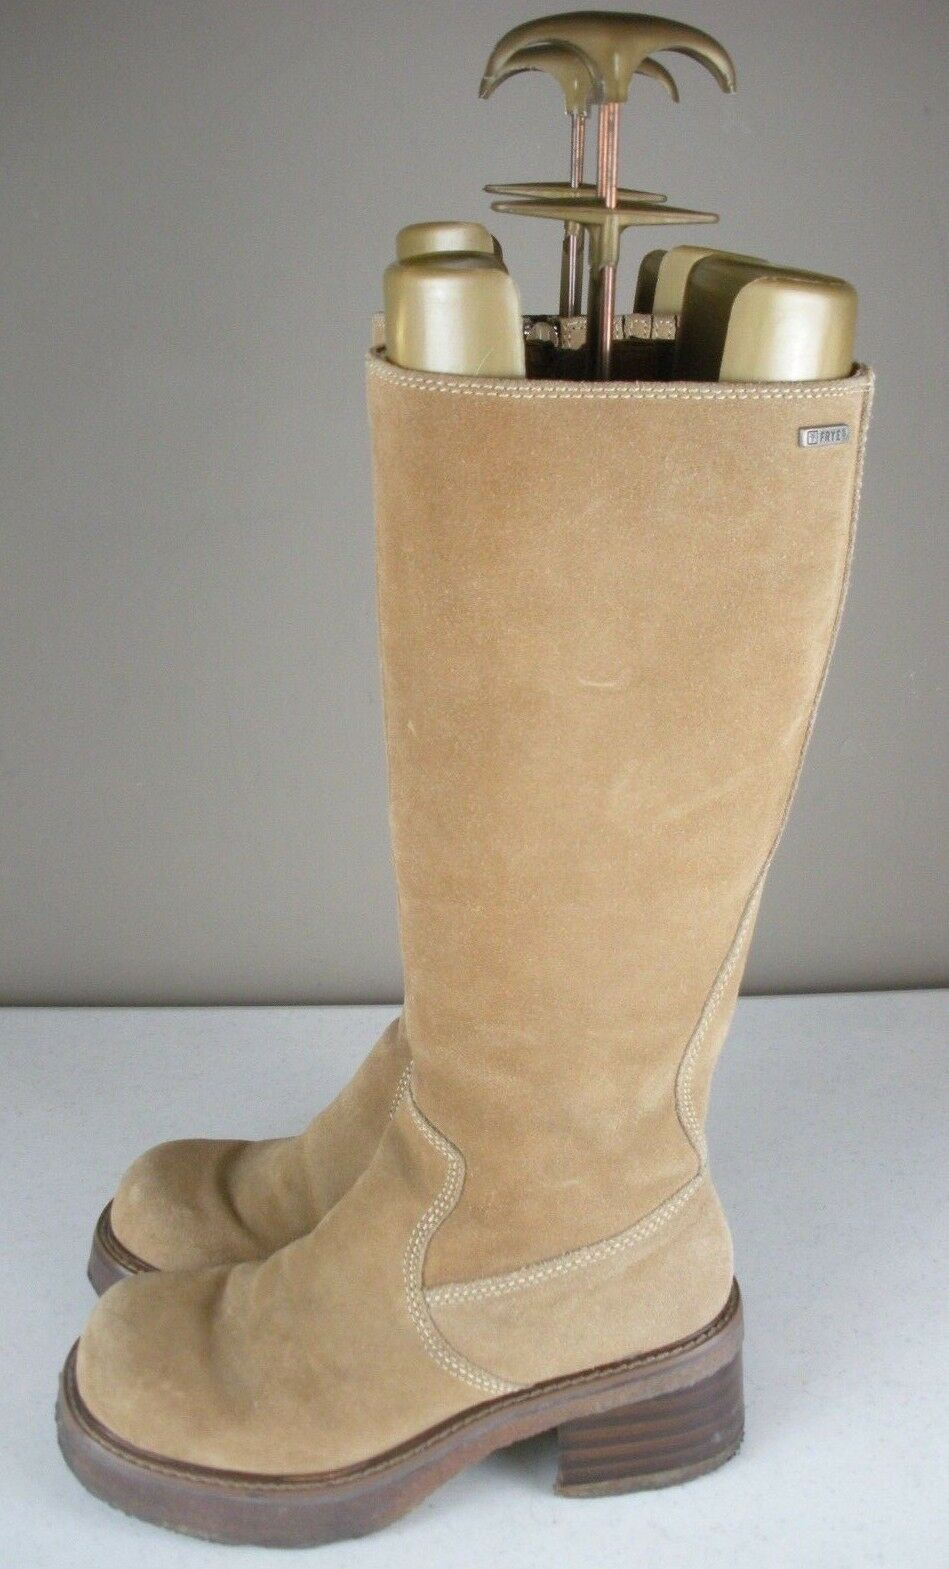 FRYE REBEL ZIP Tan Suede Leather Tall Chunky Heel Boots Women's Size 6 M - 77510